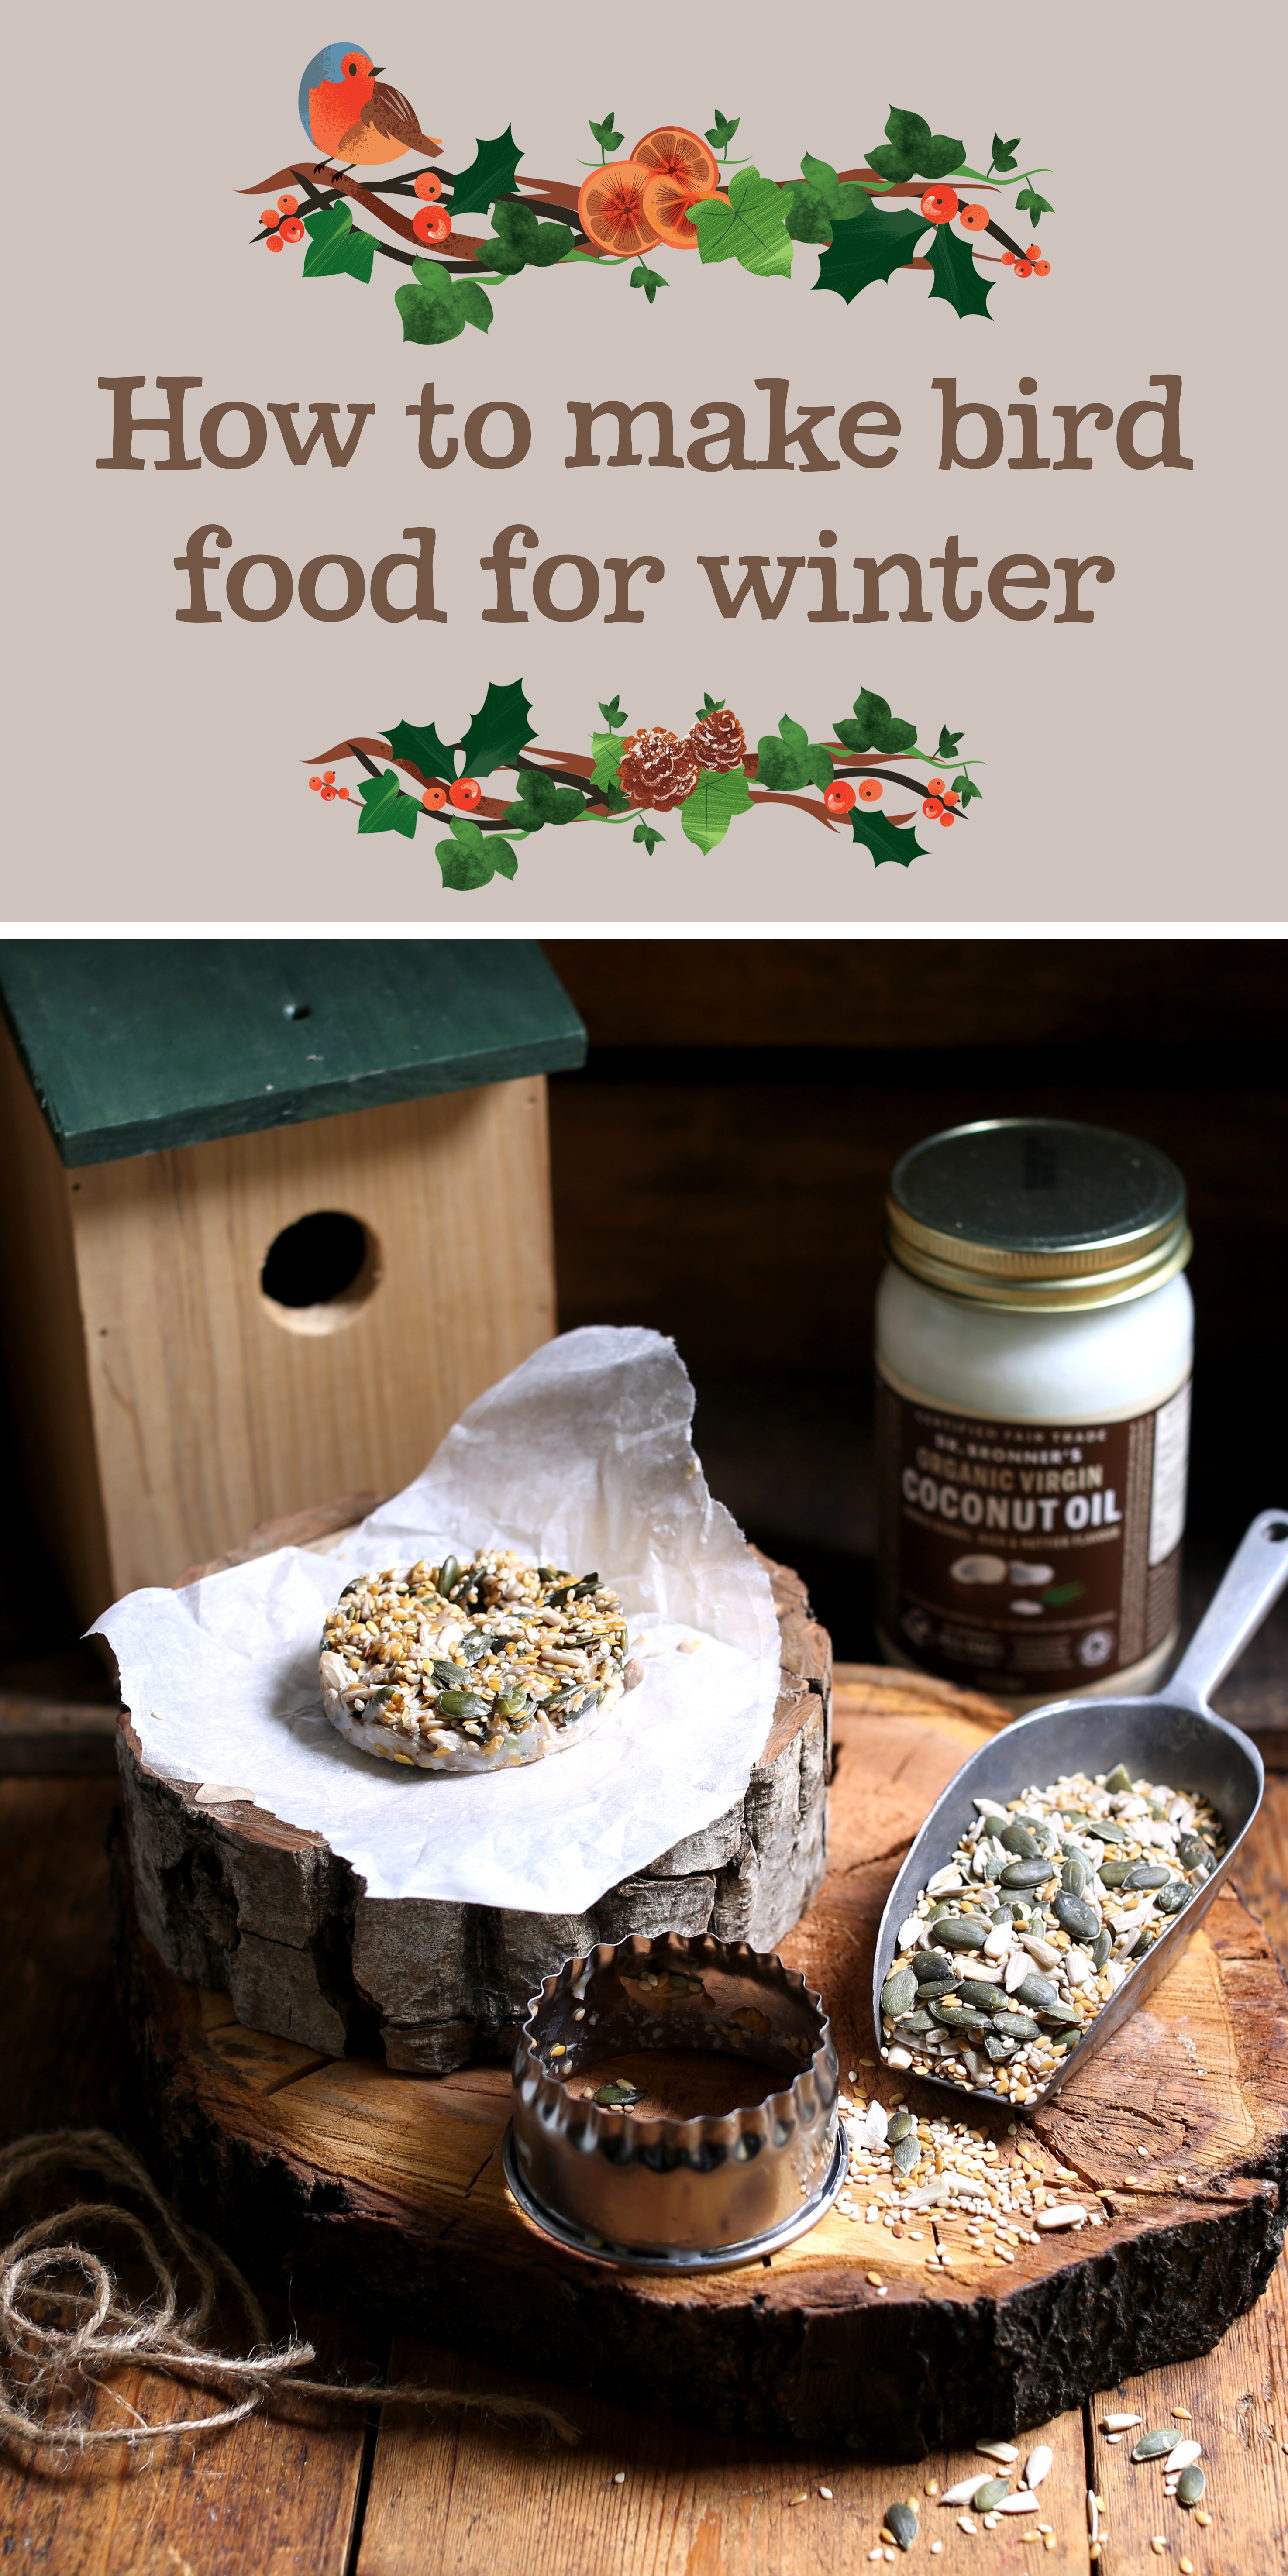 How to make bird food for winter